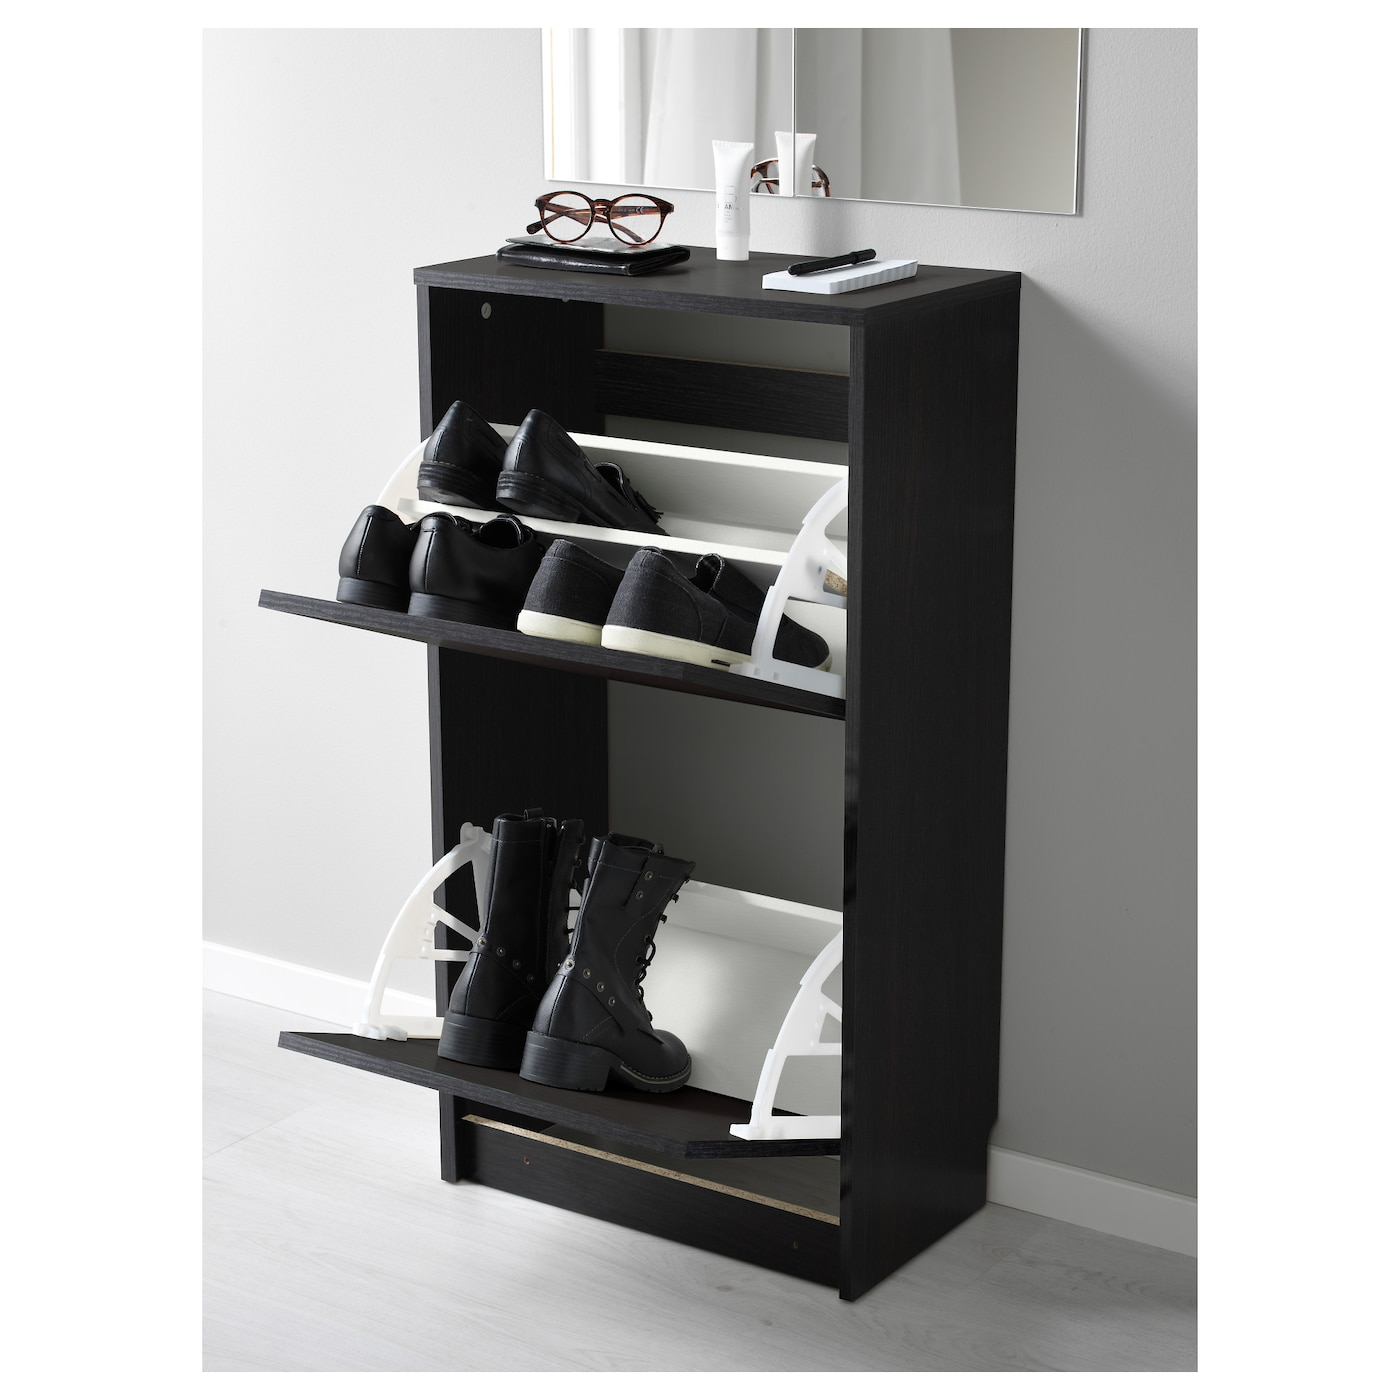 BISSA Shoe cabinet with 2 partments Blackbrown x cm IKEA